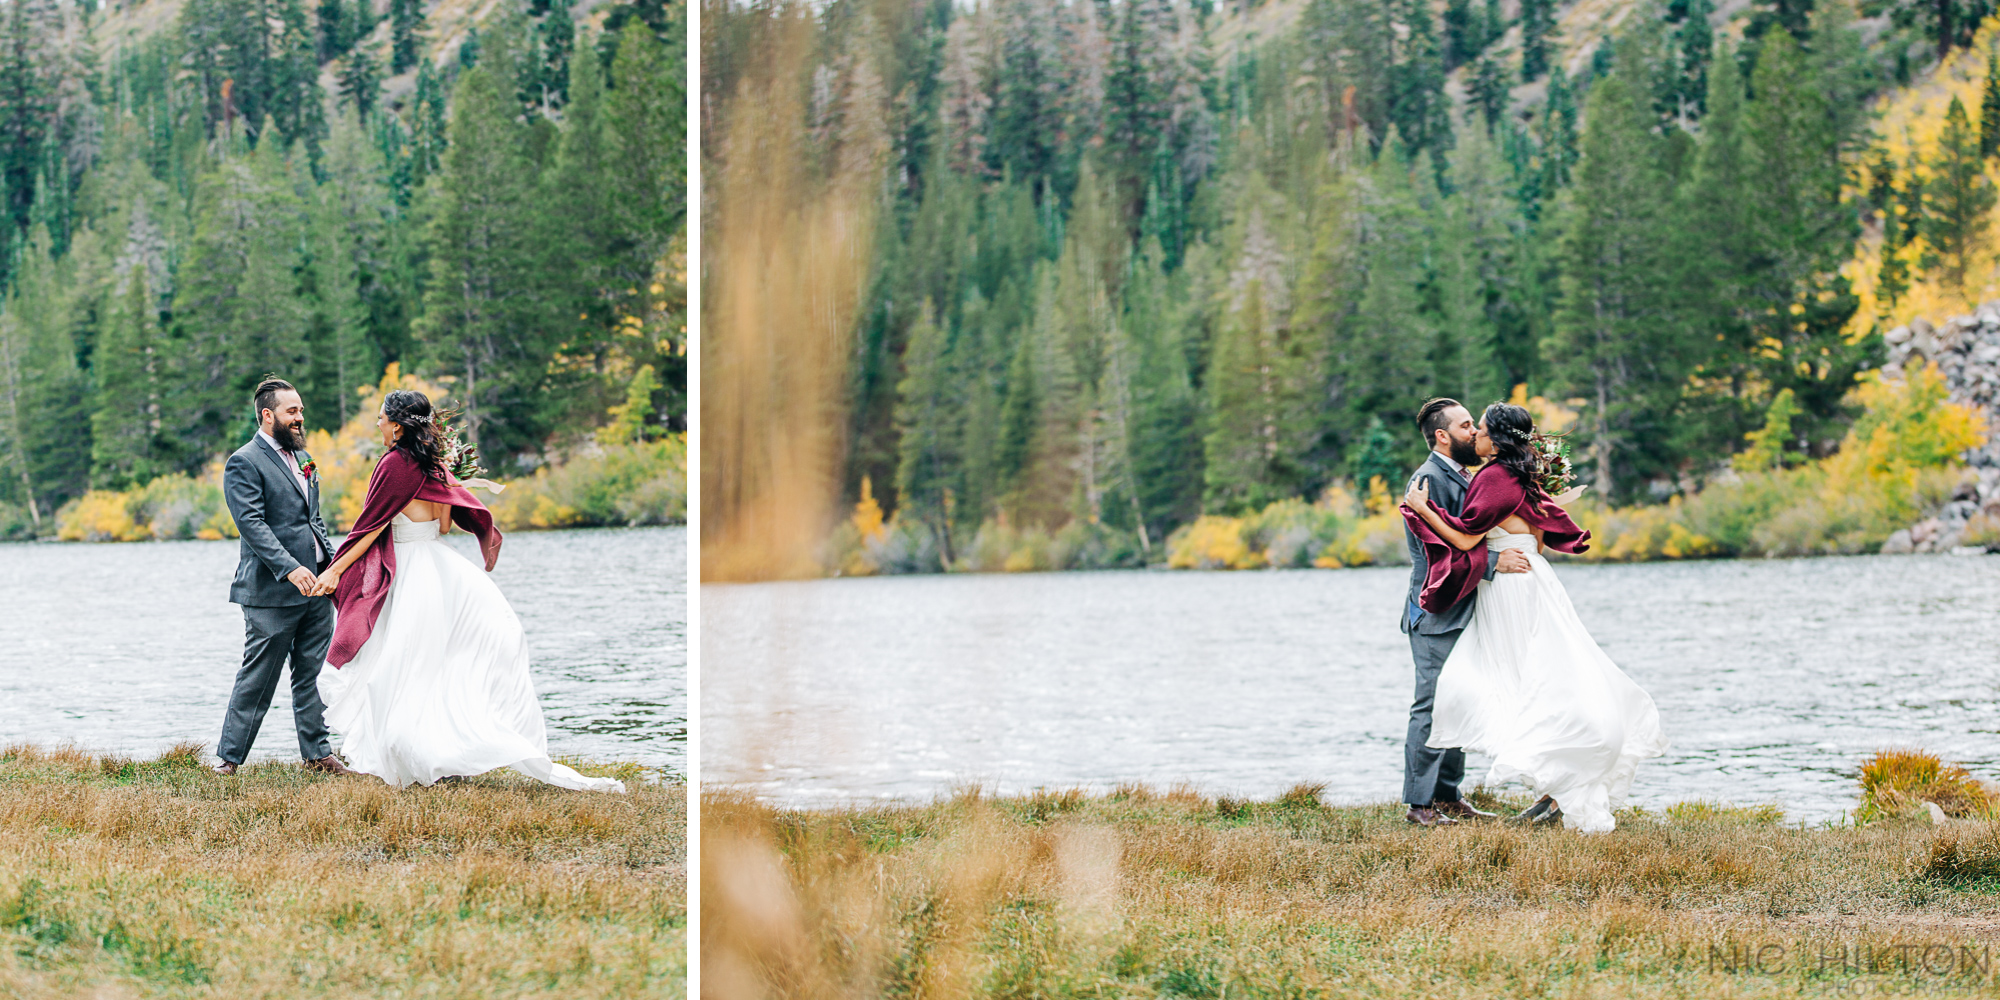 Twin-Lakes-Mammoth-Wedding-First-Look.jpg